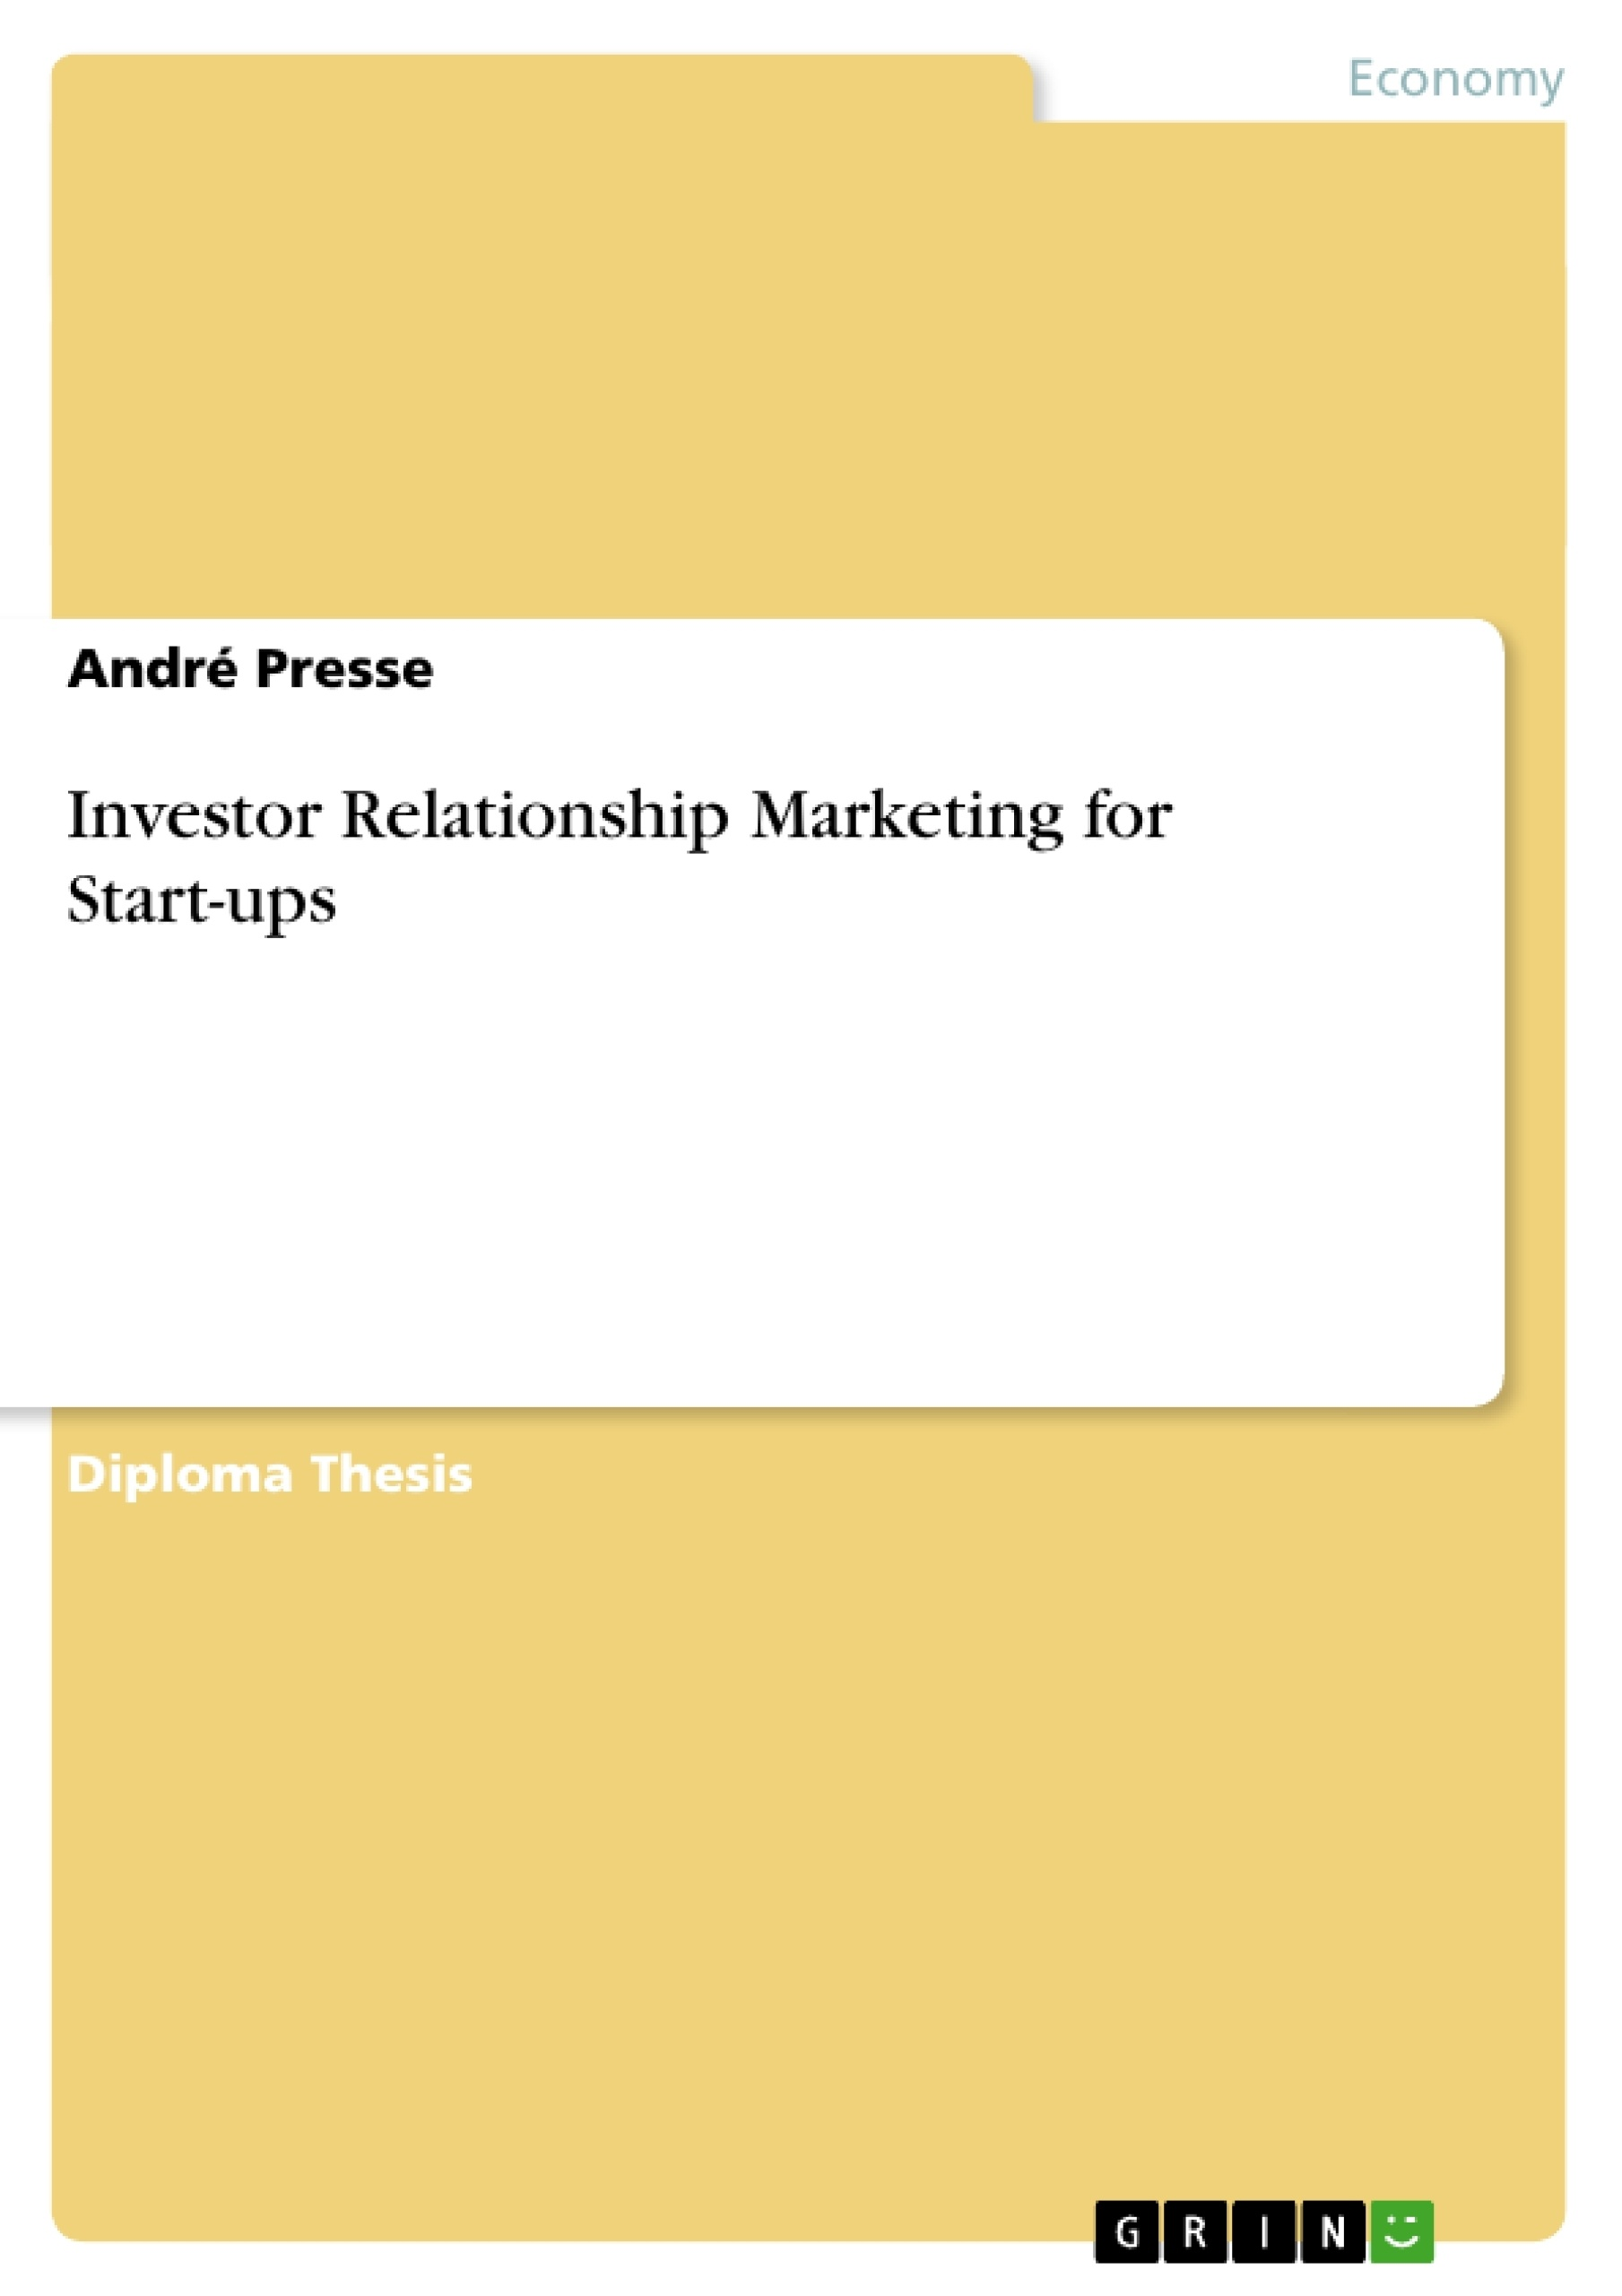 relationship marketing thesis Marketing thesis topics for pdf including relationship marketing thesis, internet, international with sample ideas for phd and mba.